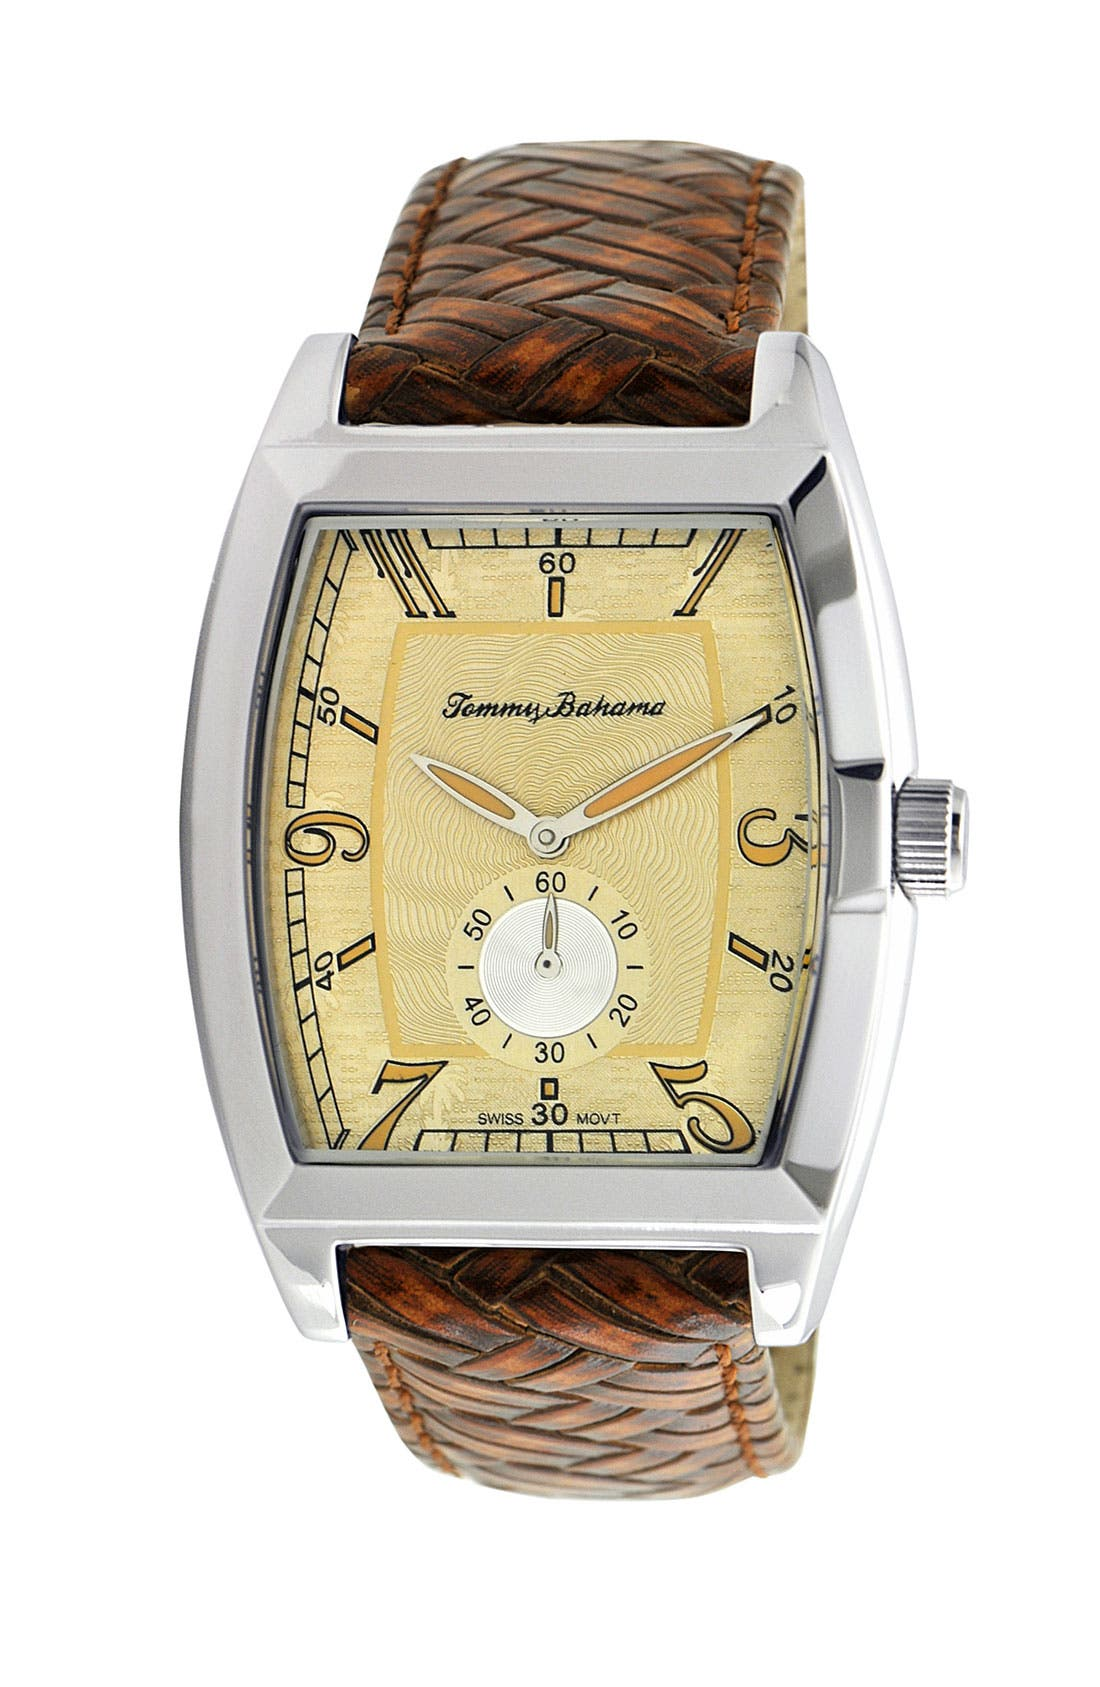 Main Image - Tommy Bahama 'Islander' Braided Leather Strap Watch, 36mm x 50mm